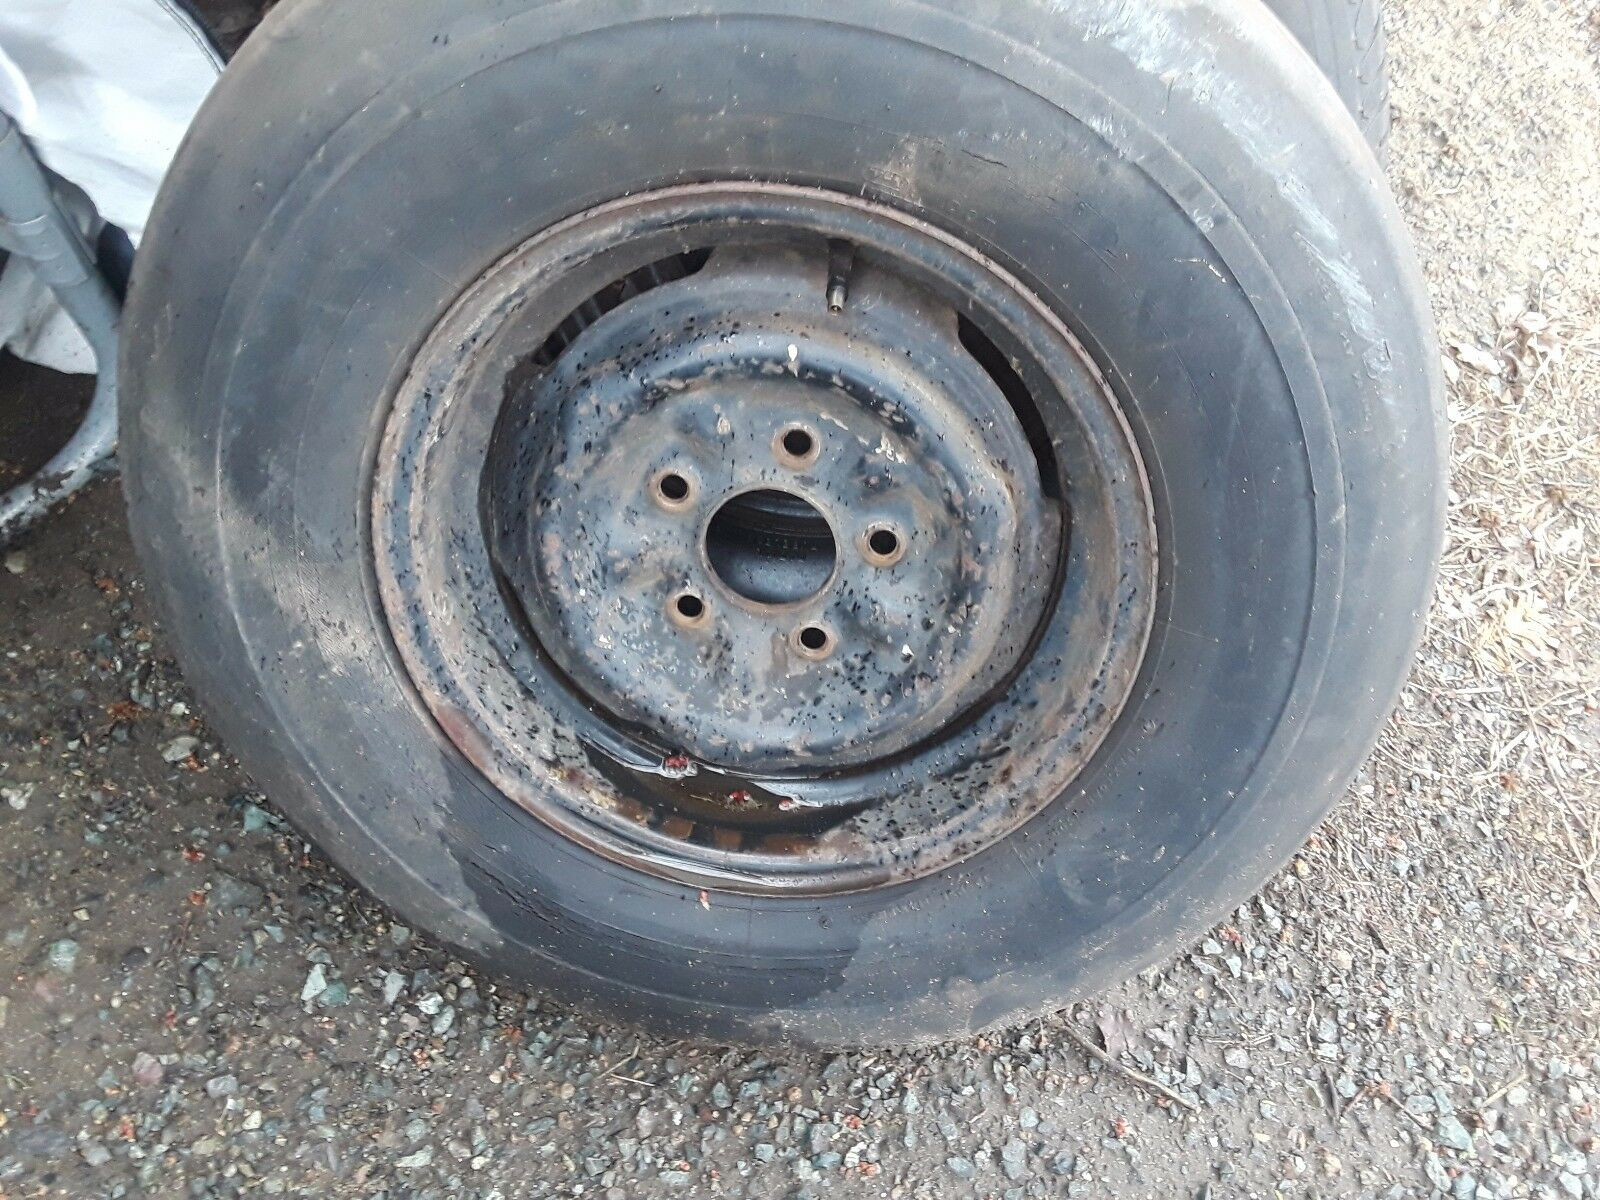 1965 1966 Chevrolet Impala Bel Air Oem 14 Steel Wheel Price Is For 1 Of 4only 3 Available